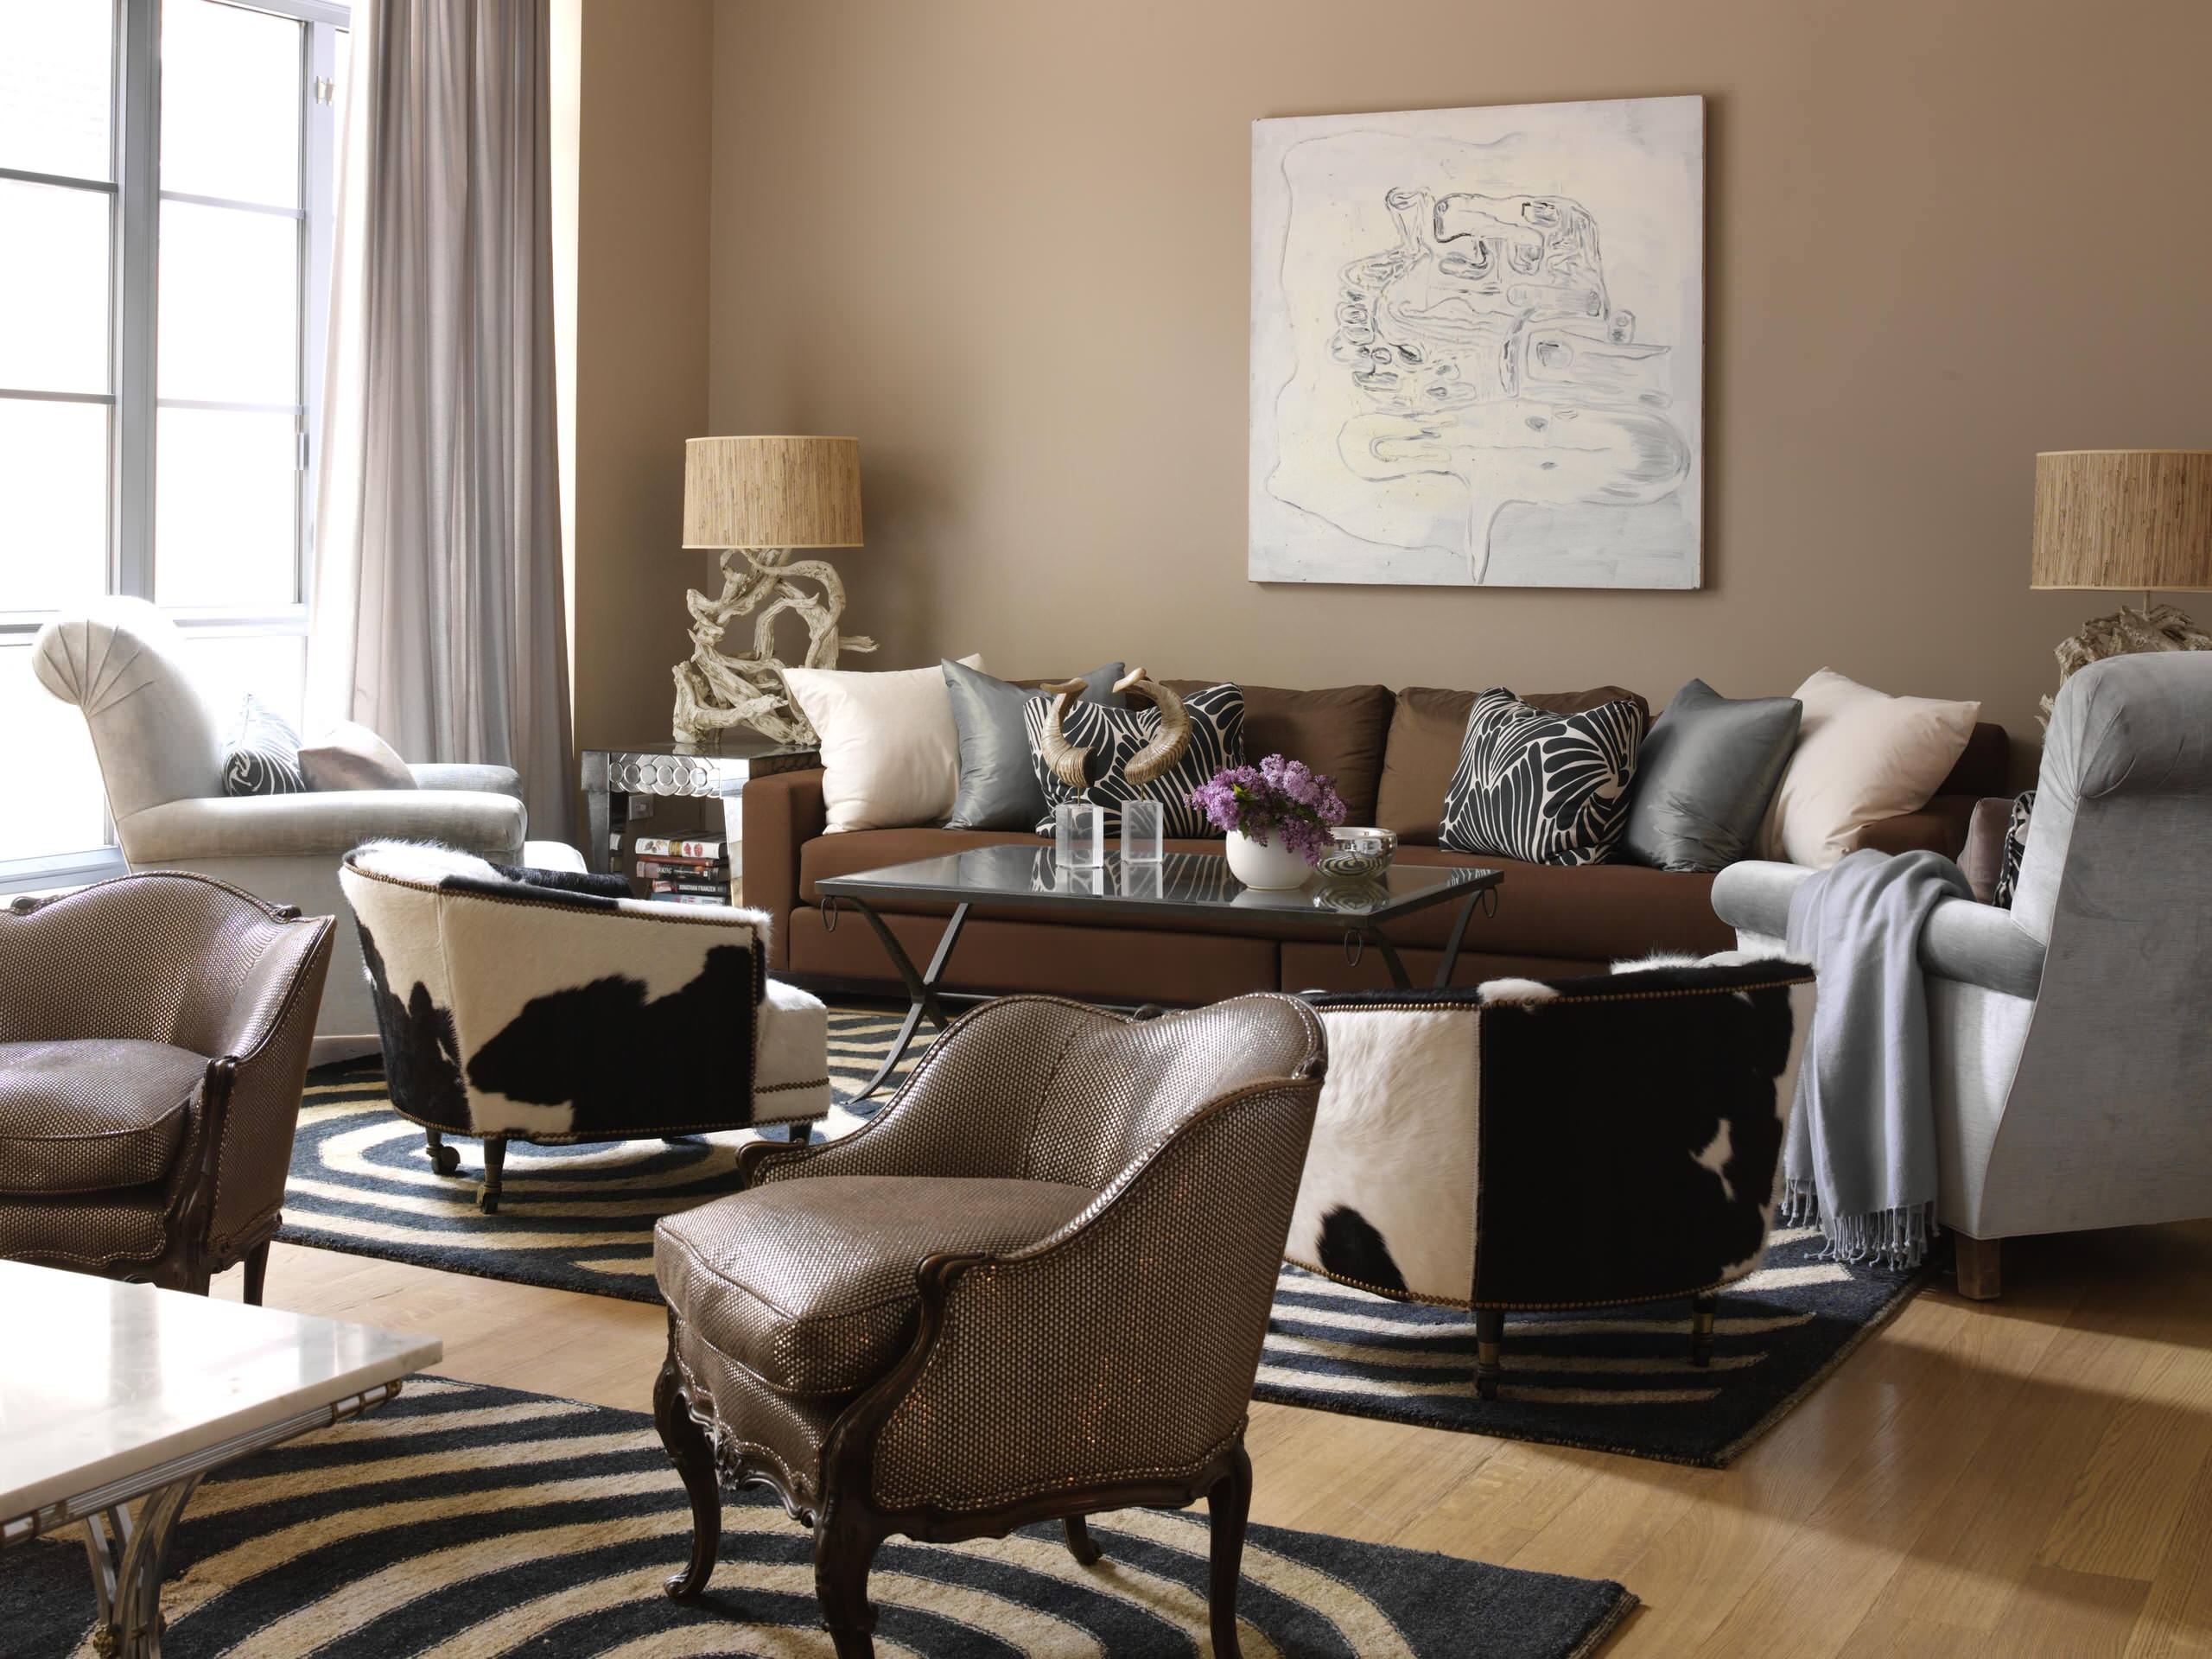 Grey And Beige Tones Living Room Ideas, Tan And Gray Living Room